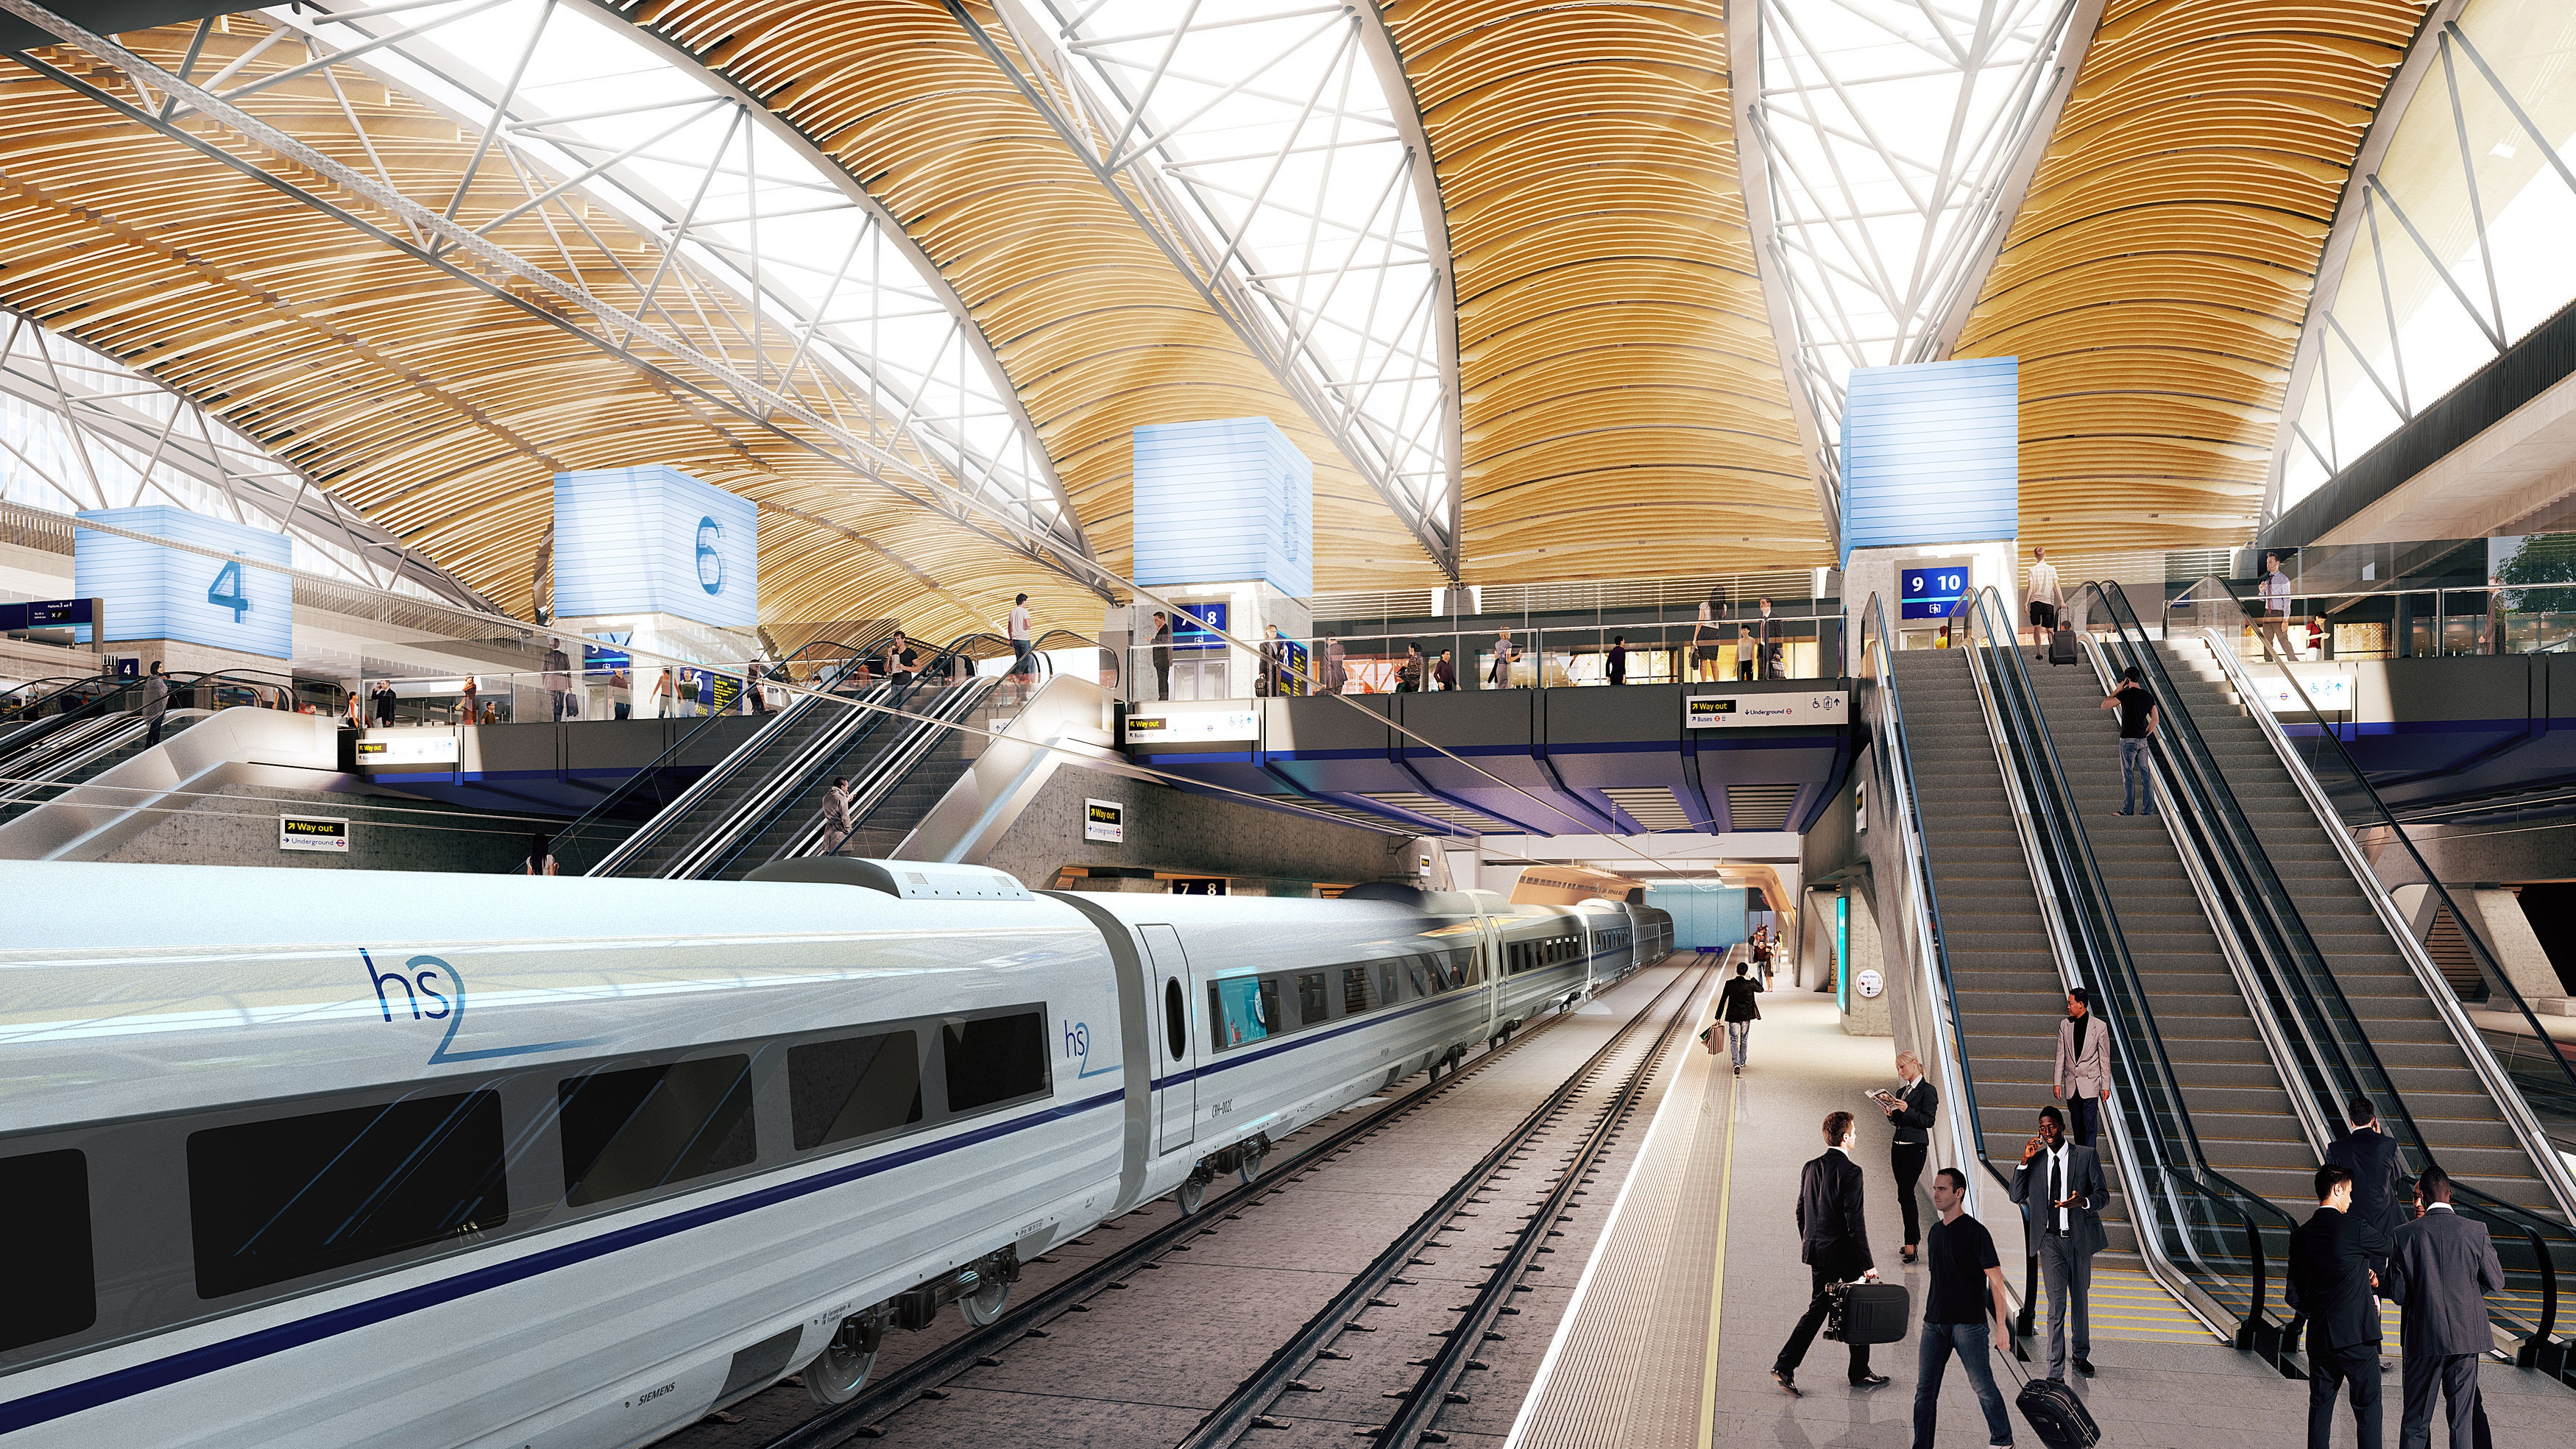 Undated artist impression issued by HS2 of the proposed HS2 station at Euston.